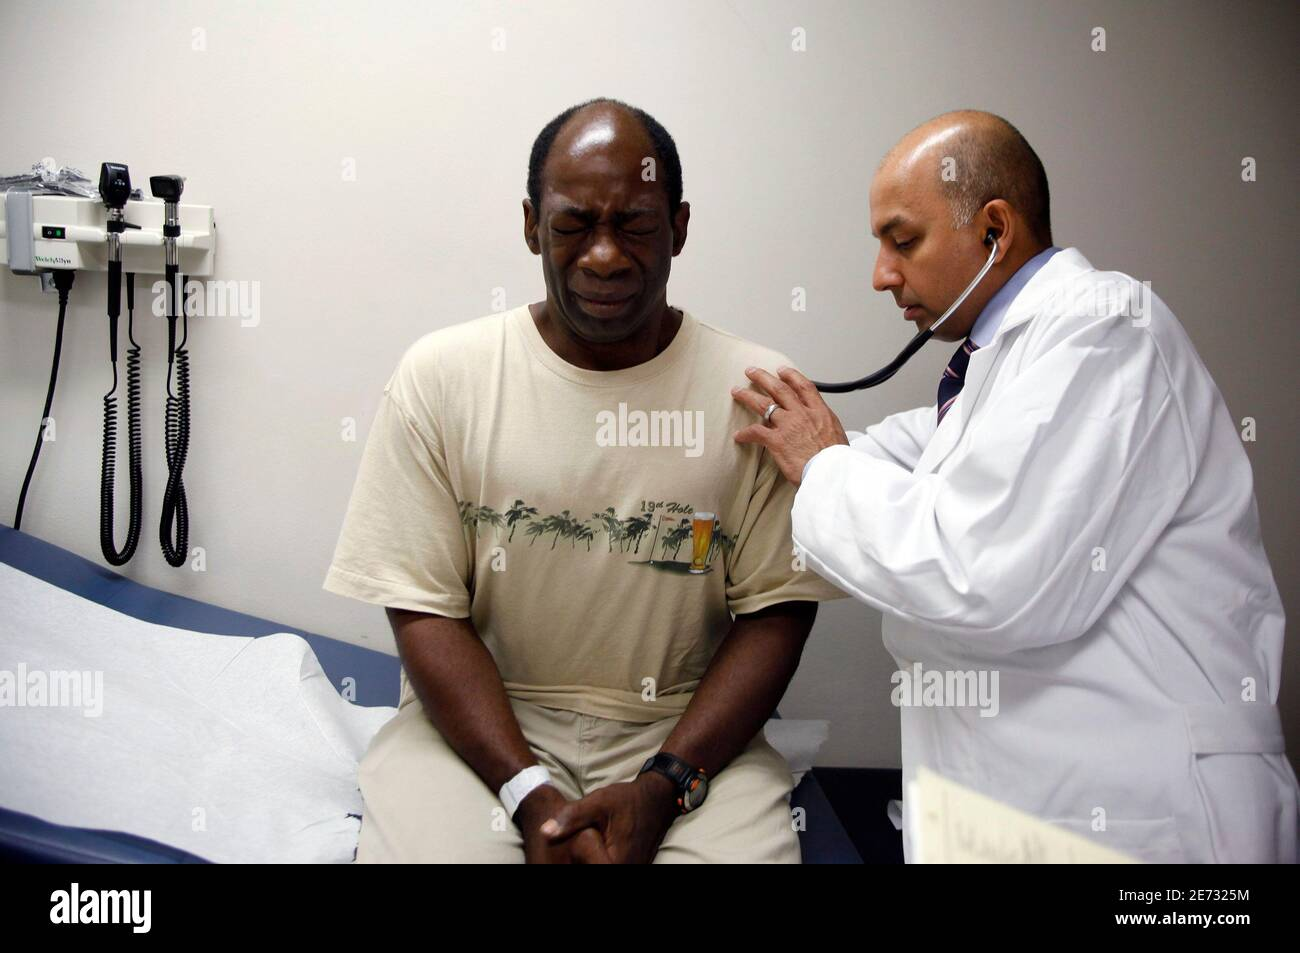 Ernest Sass, 52, (L) winces as he is attended to by Girish Bobby Kapur, M.D. (R) in a room used to see patients who don't require treatment for trauma inside the emergency room at Ben Taub General Hospital in Houston, Texas July 27, 2009.  Houston, the fourth-largest American city, is a case study in the extremes of the U.S. healthcare system.  It boasts the immense medical center that offers top-notch care at its 13 hospitals, but also has a higher ratio of uninsured patients than any major U.S. city: about 30 percent. To match feature USA-HEALTHCARE/TEXAS   REUTERS/Jessica Rinaldi (UNITED ST Stock Photo